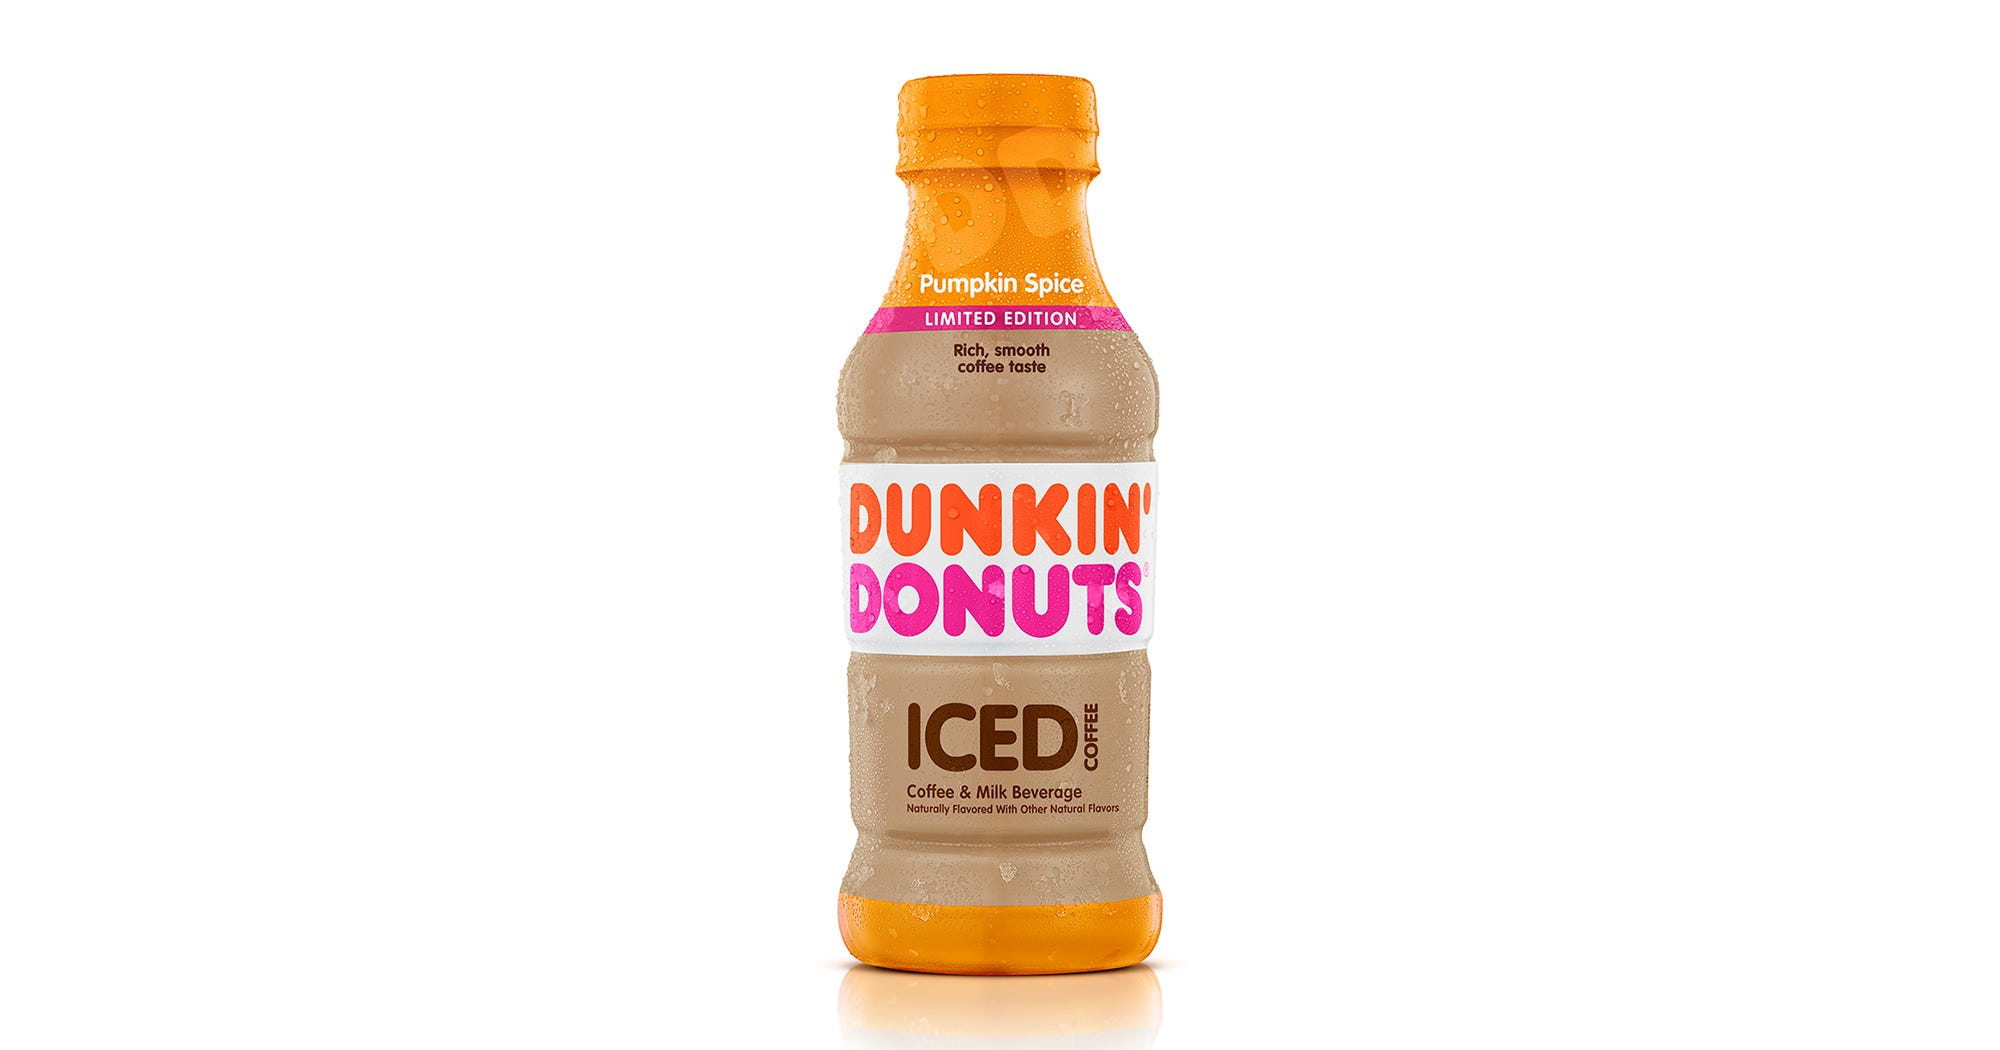 Dunkin Donuts Launches Bottled Pumpkin Spice Ice Coffee